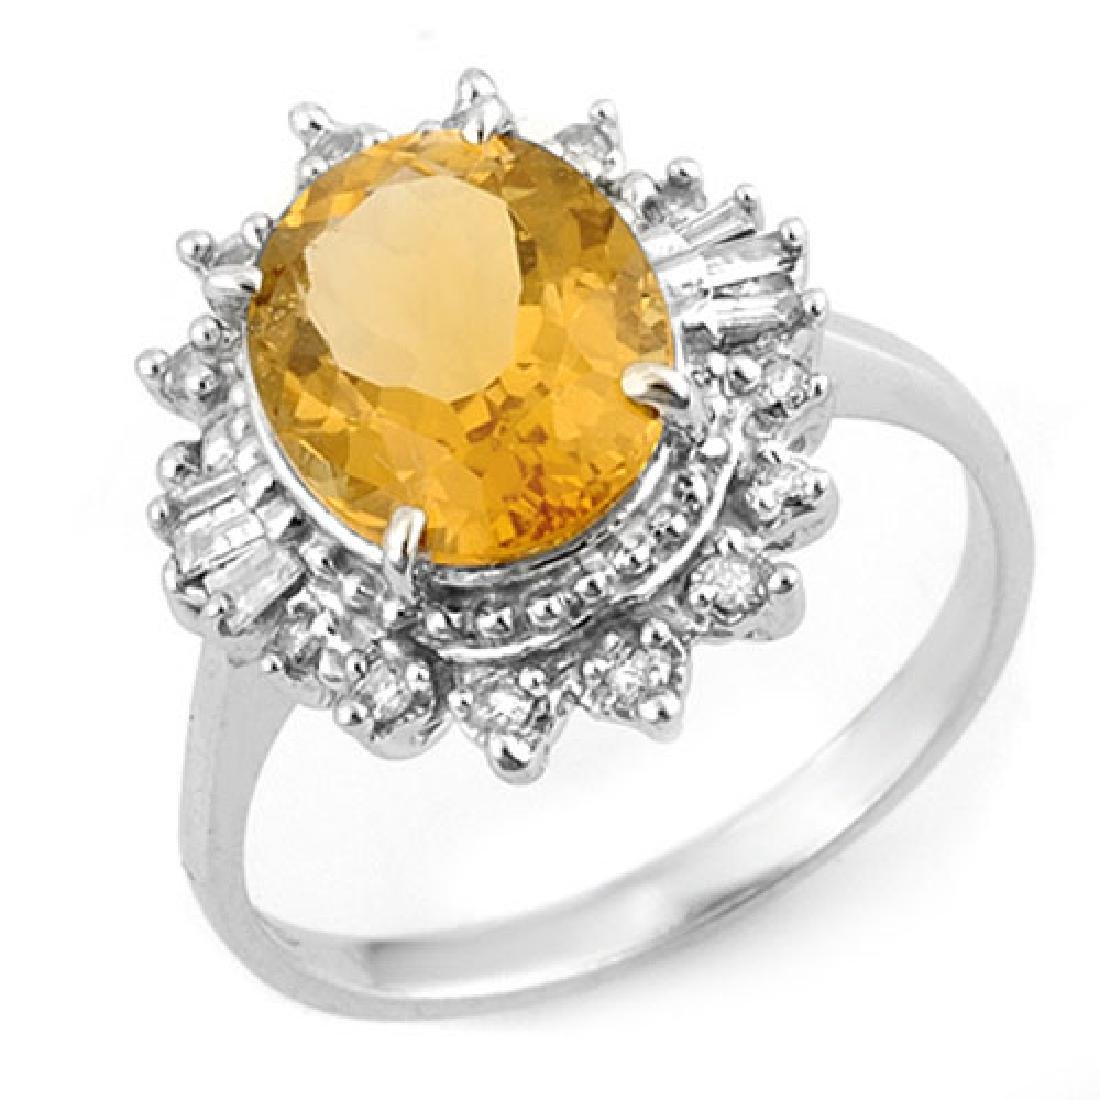 3.45 CTW Citrine & Diamond Ring 10K White Gold